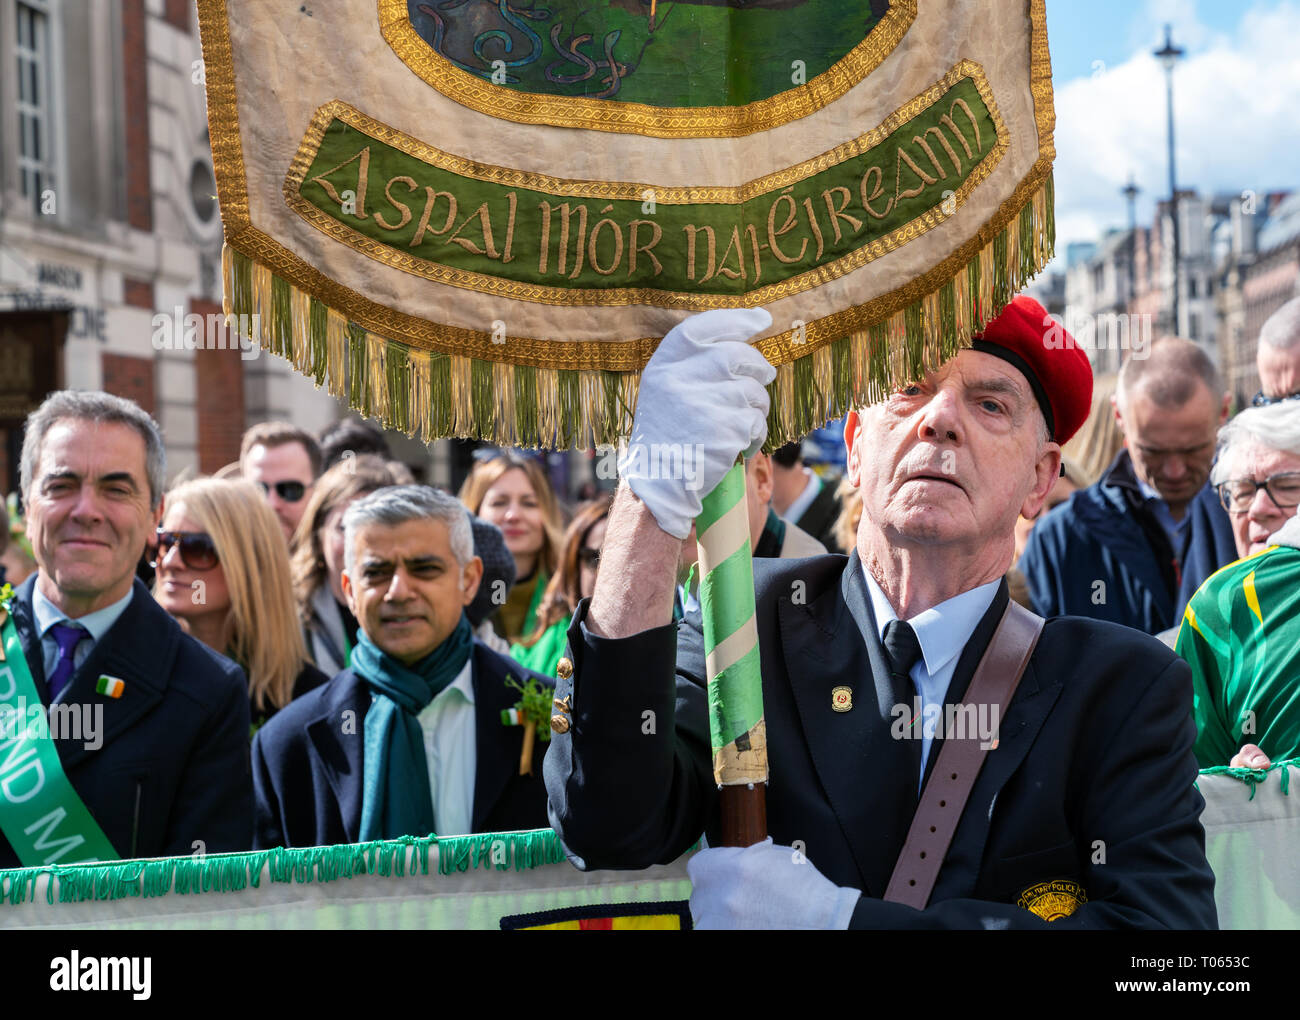 London, UK. 17th Mar, 2019. 17th March 2019. London, UK. James Nesbitt, Grand Marshall of the London St Patrick's Day parade with Mayor of London Sadiq Khan in the background. Credit: AndKa/Alamy Live News - Stock Image